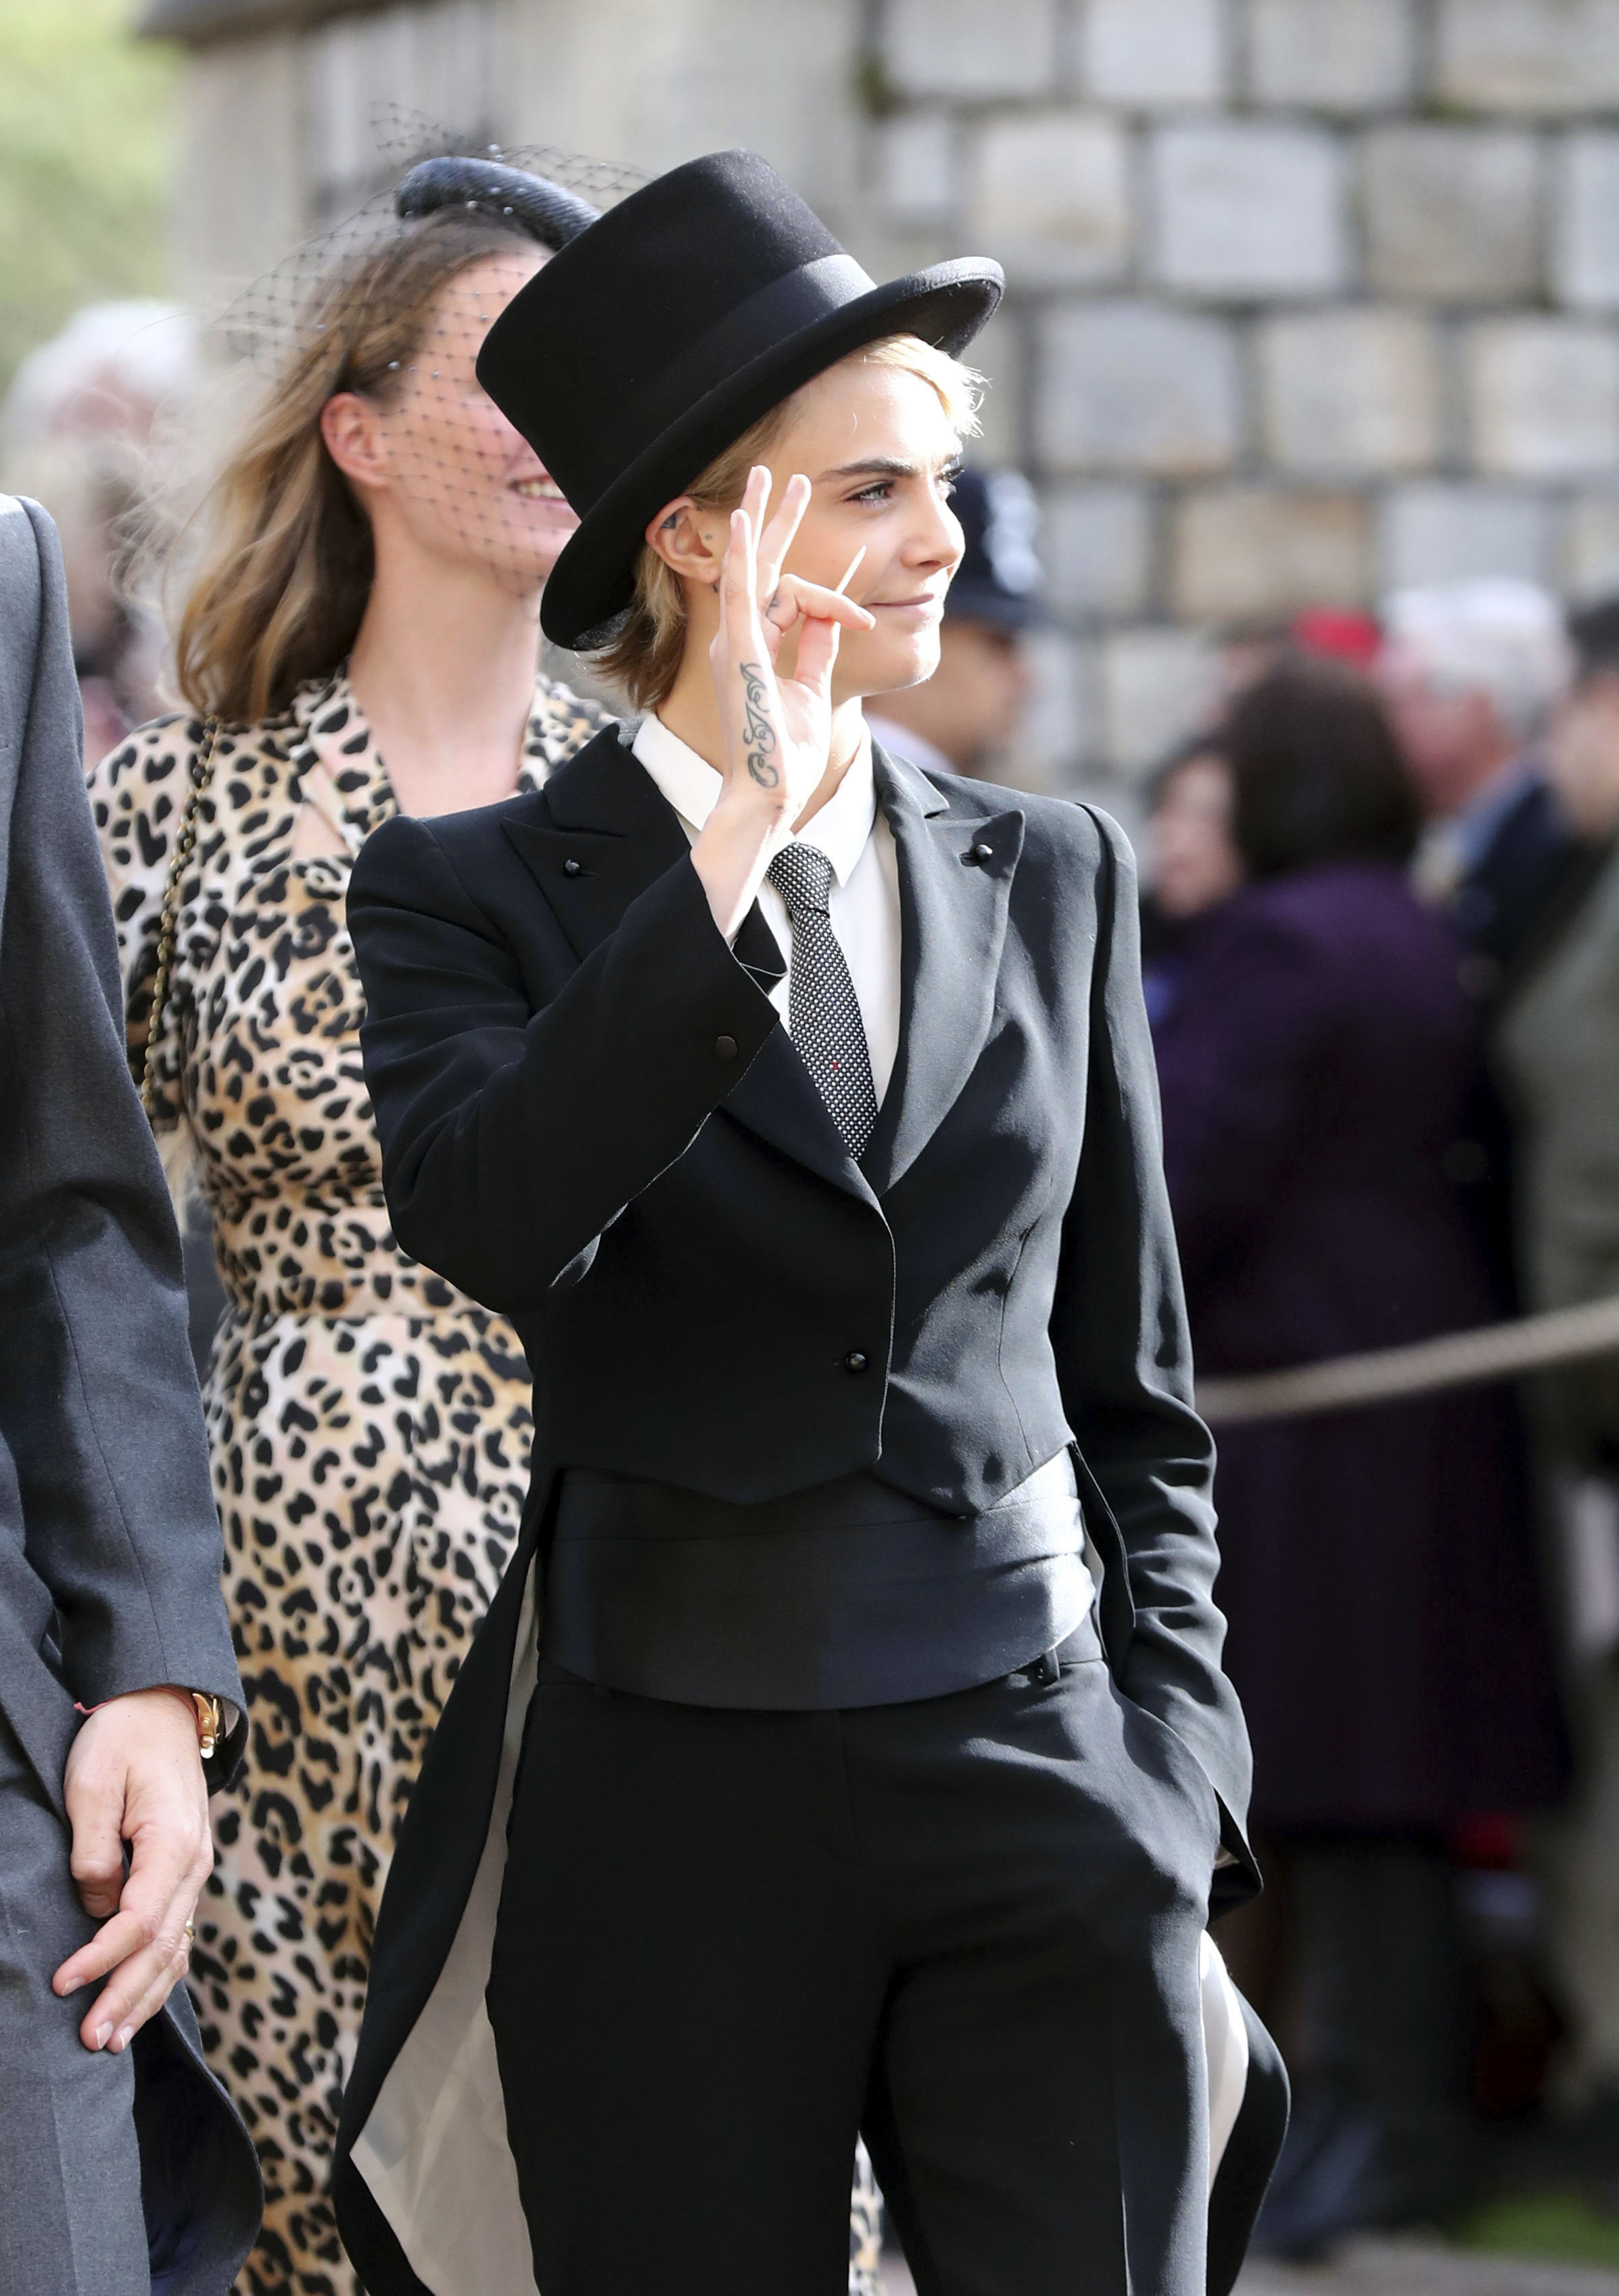 <div class='meta'><div class='origin-logo' data-origin='none'></div><span class='caption-text' data-credit='Gareth Fuller/Pool via AP'>Cara Delevingne arrives ahead of the wedding of Princess Eugenie of York and Jack Brooksbank at St George's Chapel, Windsor Castle, near London, England, Friday Oct. 12, 2018.</span></div>